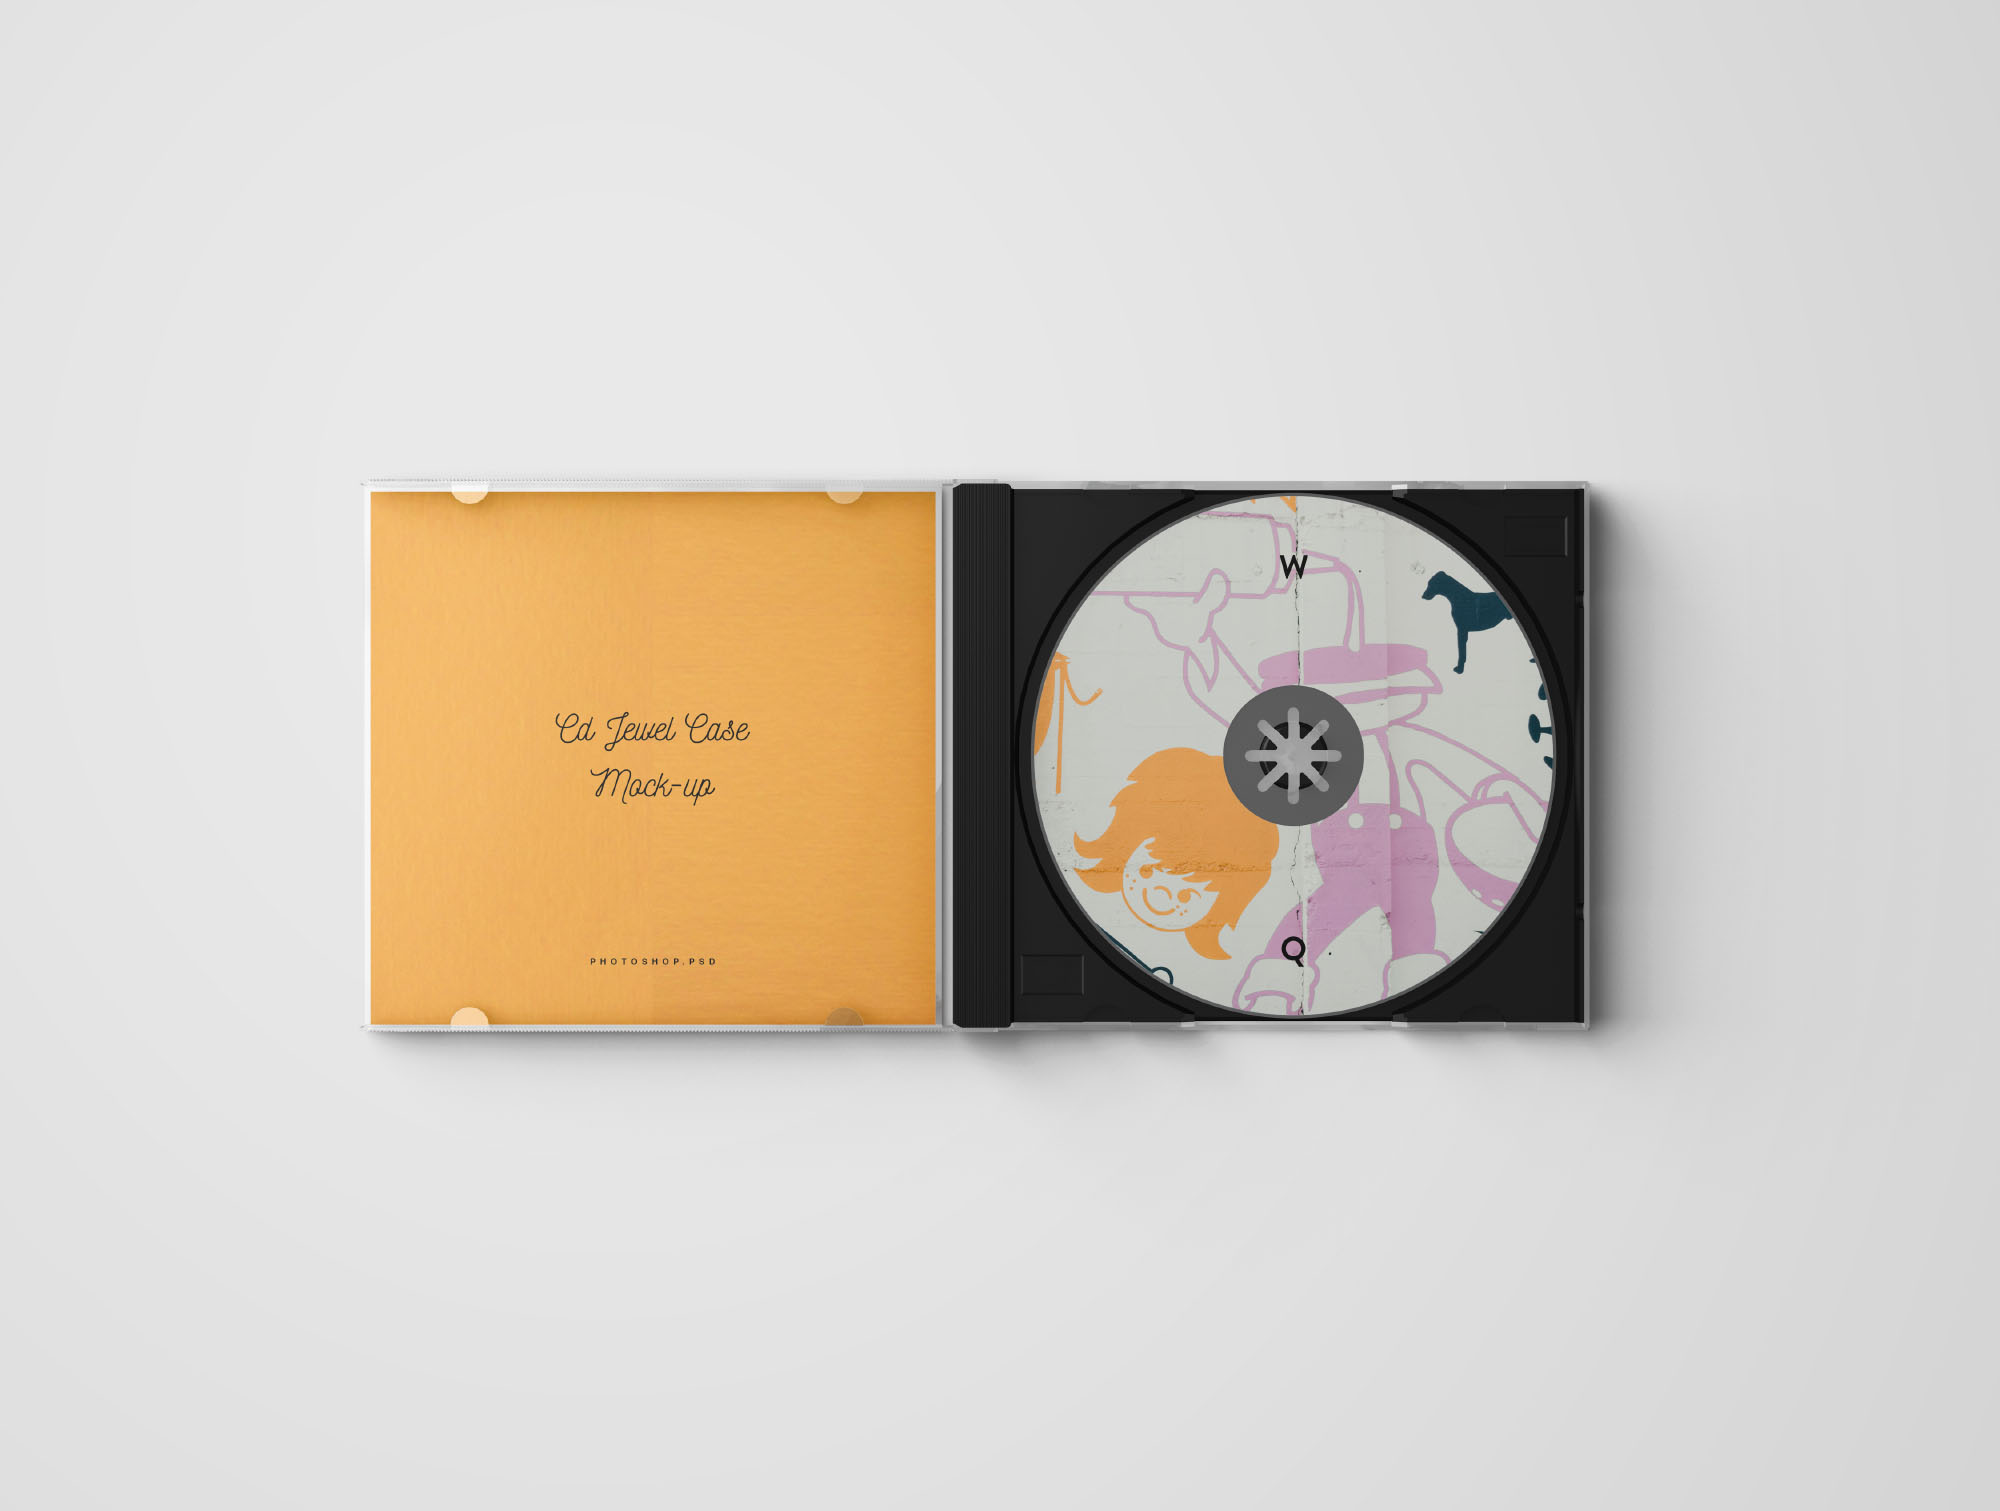 CD Jewel Case Mockup  Photoshop